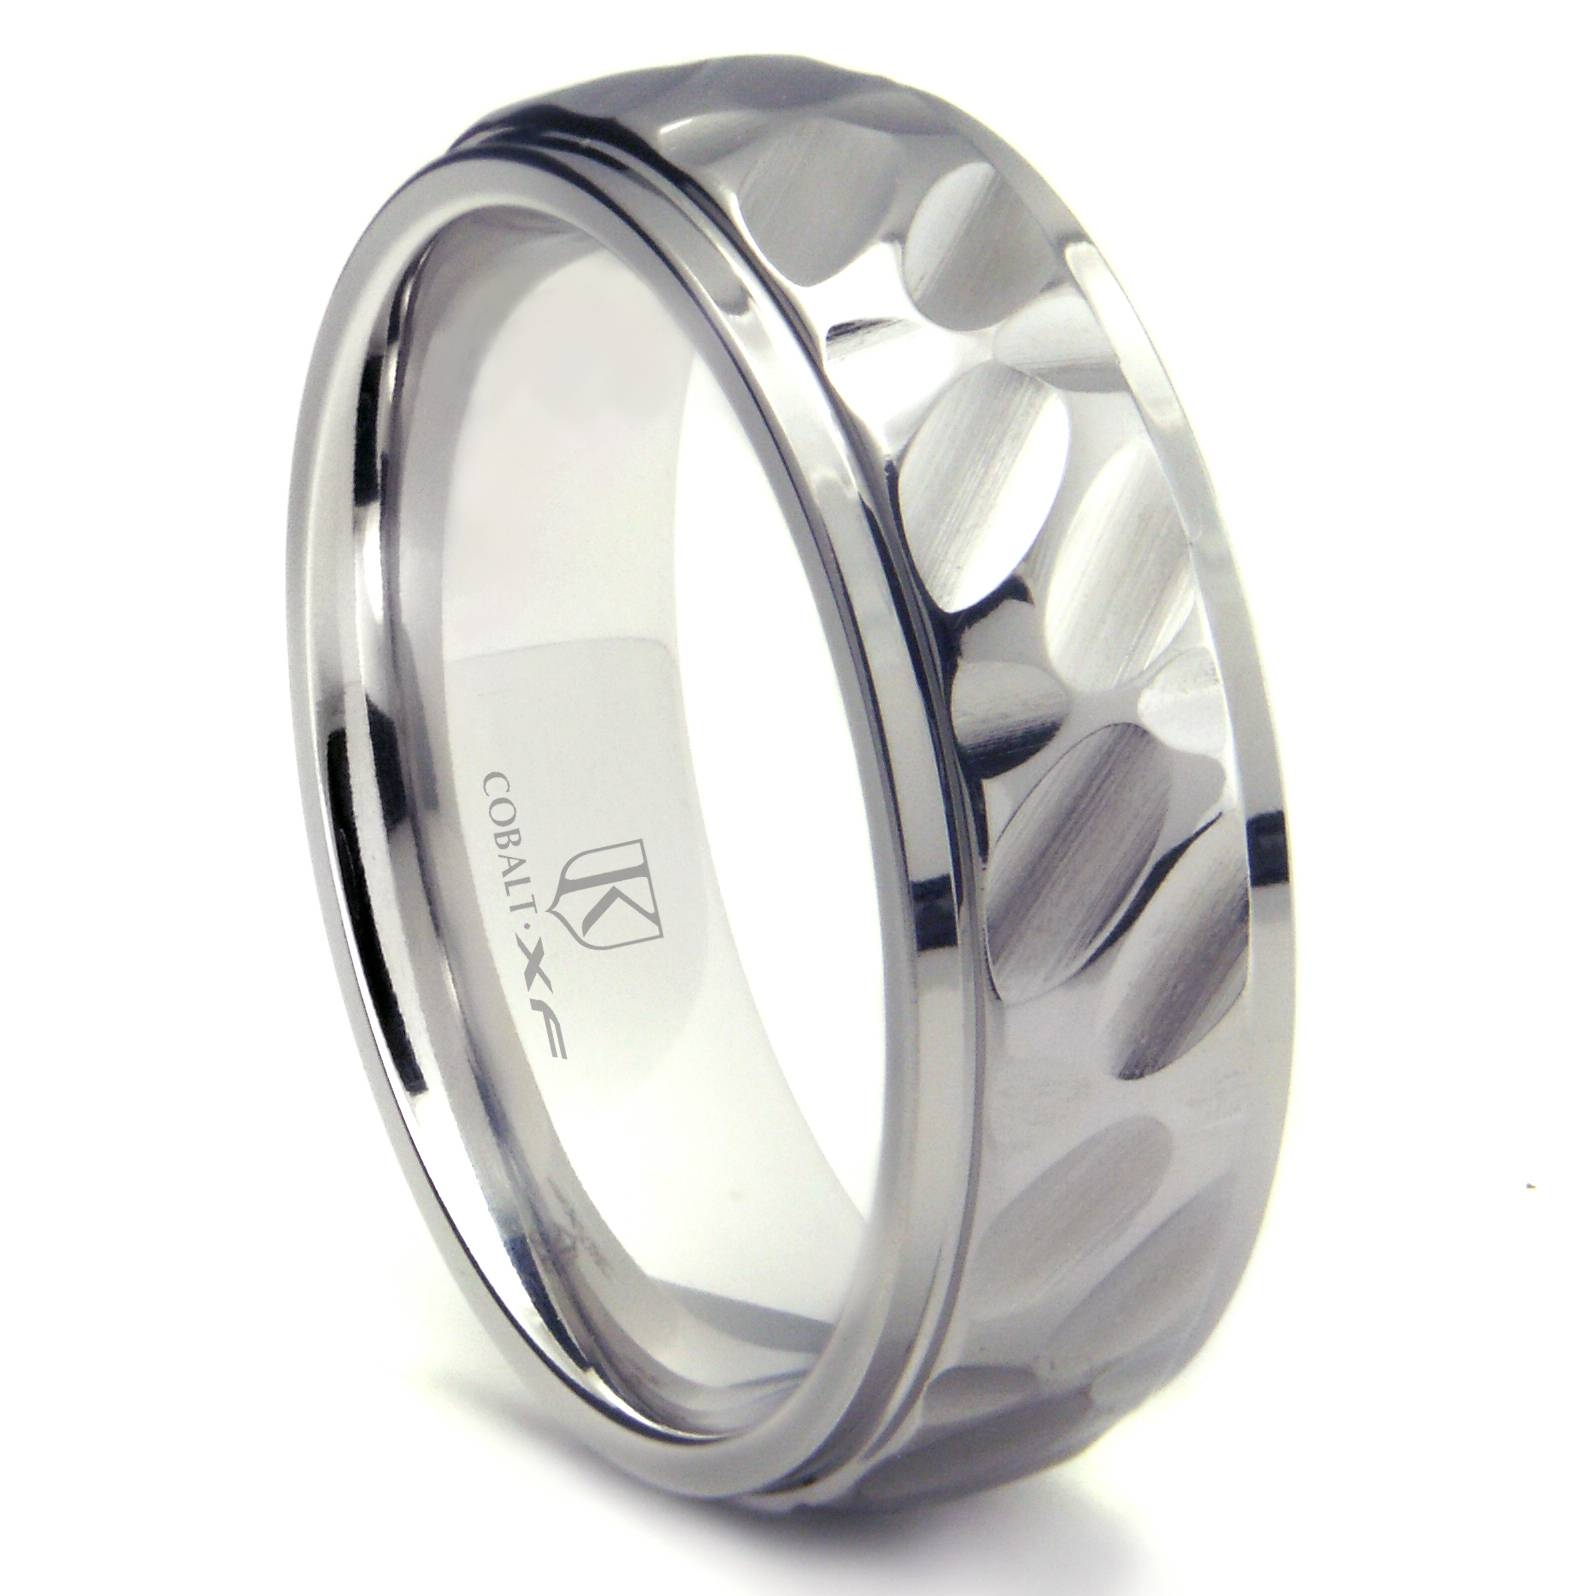 Cobalt Xf Chrome 8Mm Hammer Finish Wedding Band Ring Throughout Tungsten Hammered Wedding Bands (View 5 of 15)